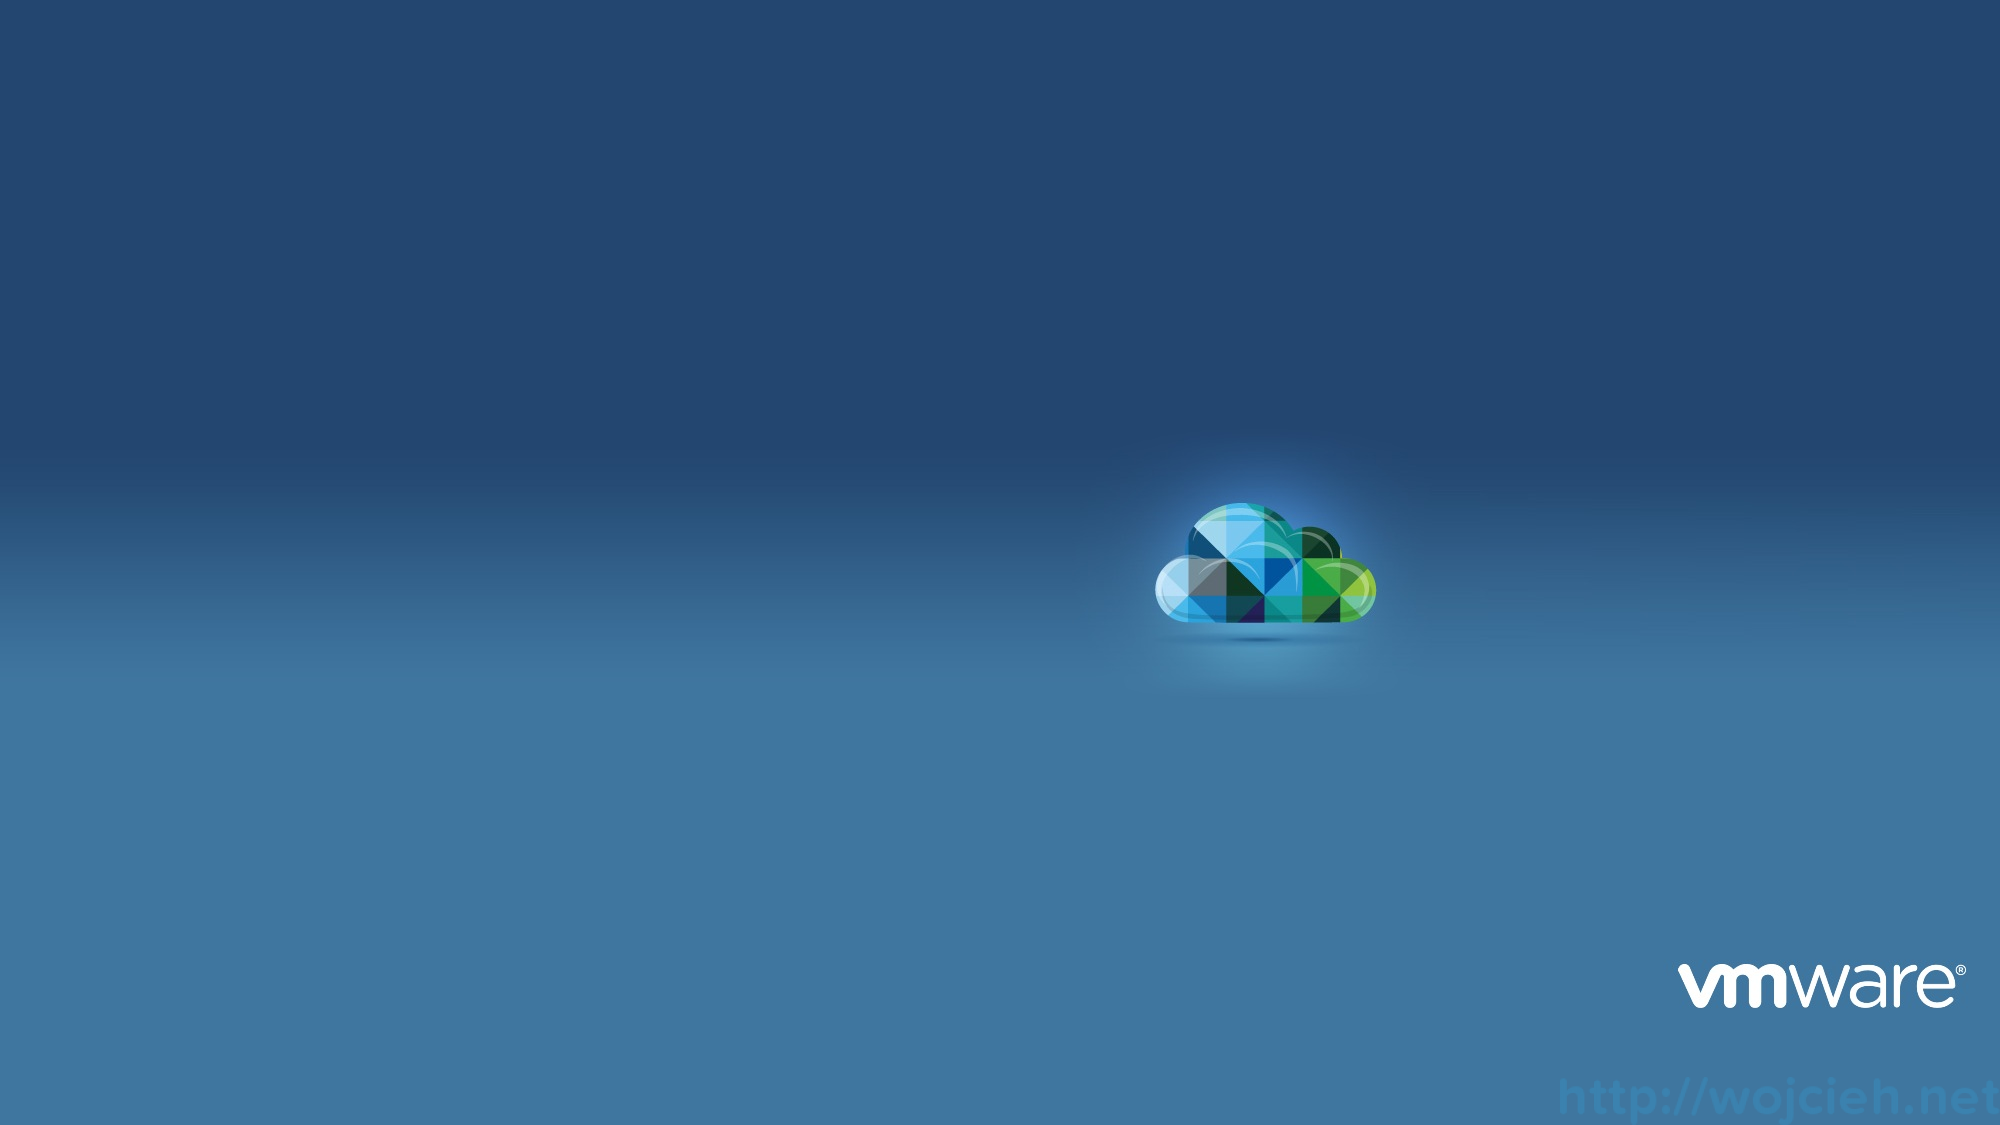 Vmware Wallpaper